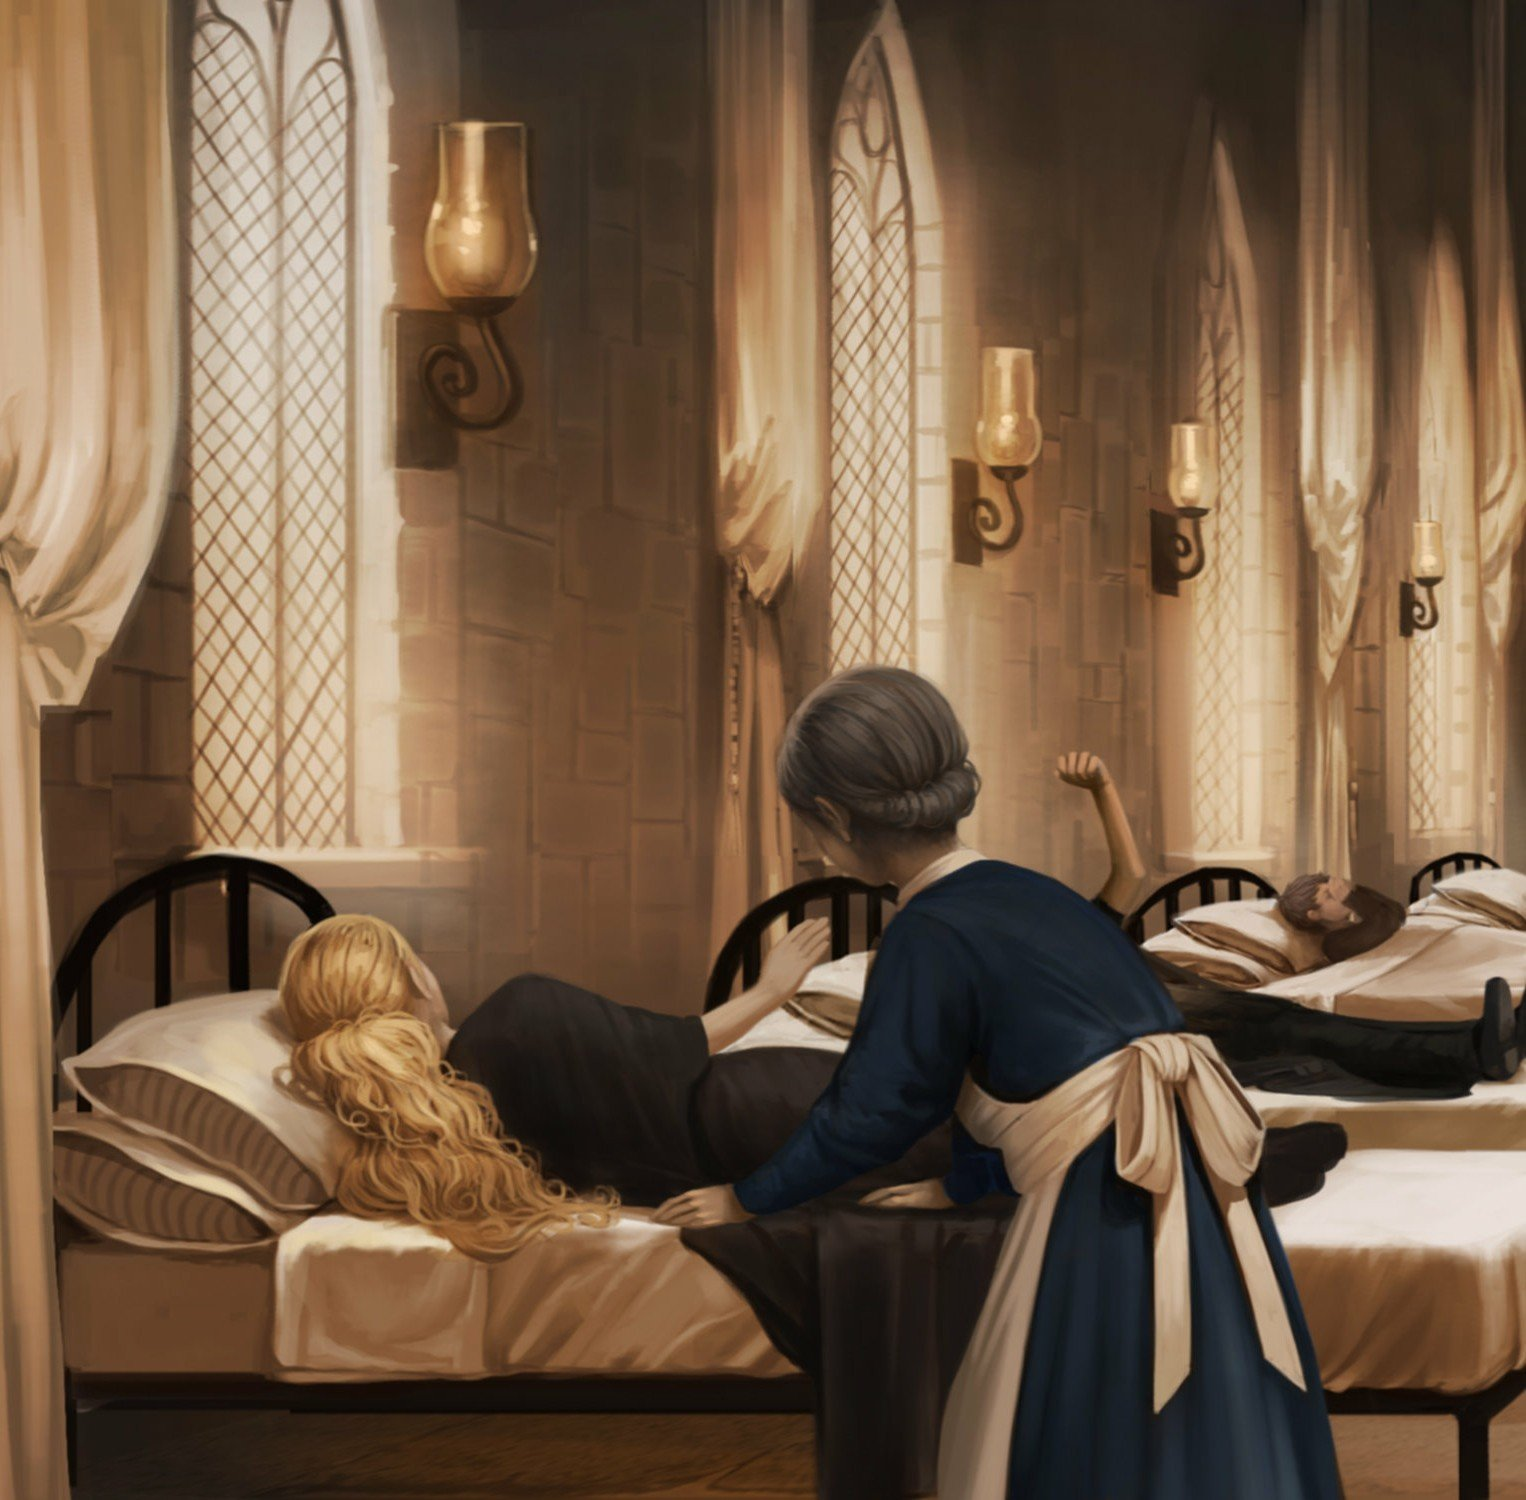 Hermione falls foul of the Basilisk: 3 students lay in the beds in the Nursing wing, the closest one is a blonde girl with her backk to us being tended to by the nurse; the middle one is unseen apart from their legs and raised hand; the last is a male with his right hand over his face